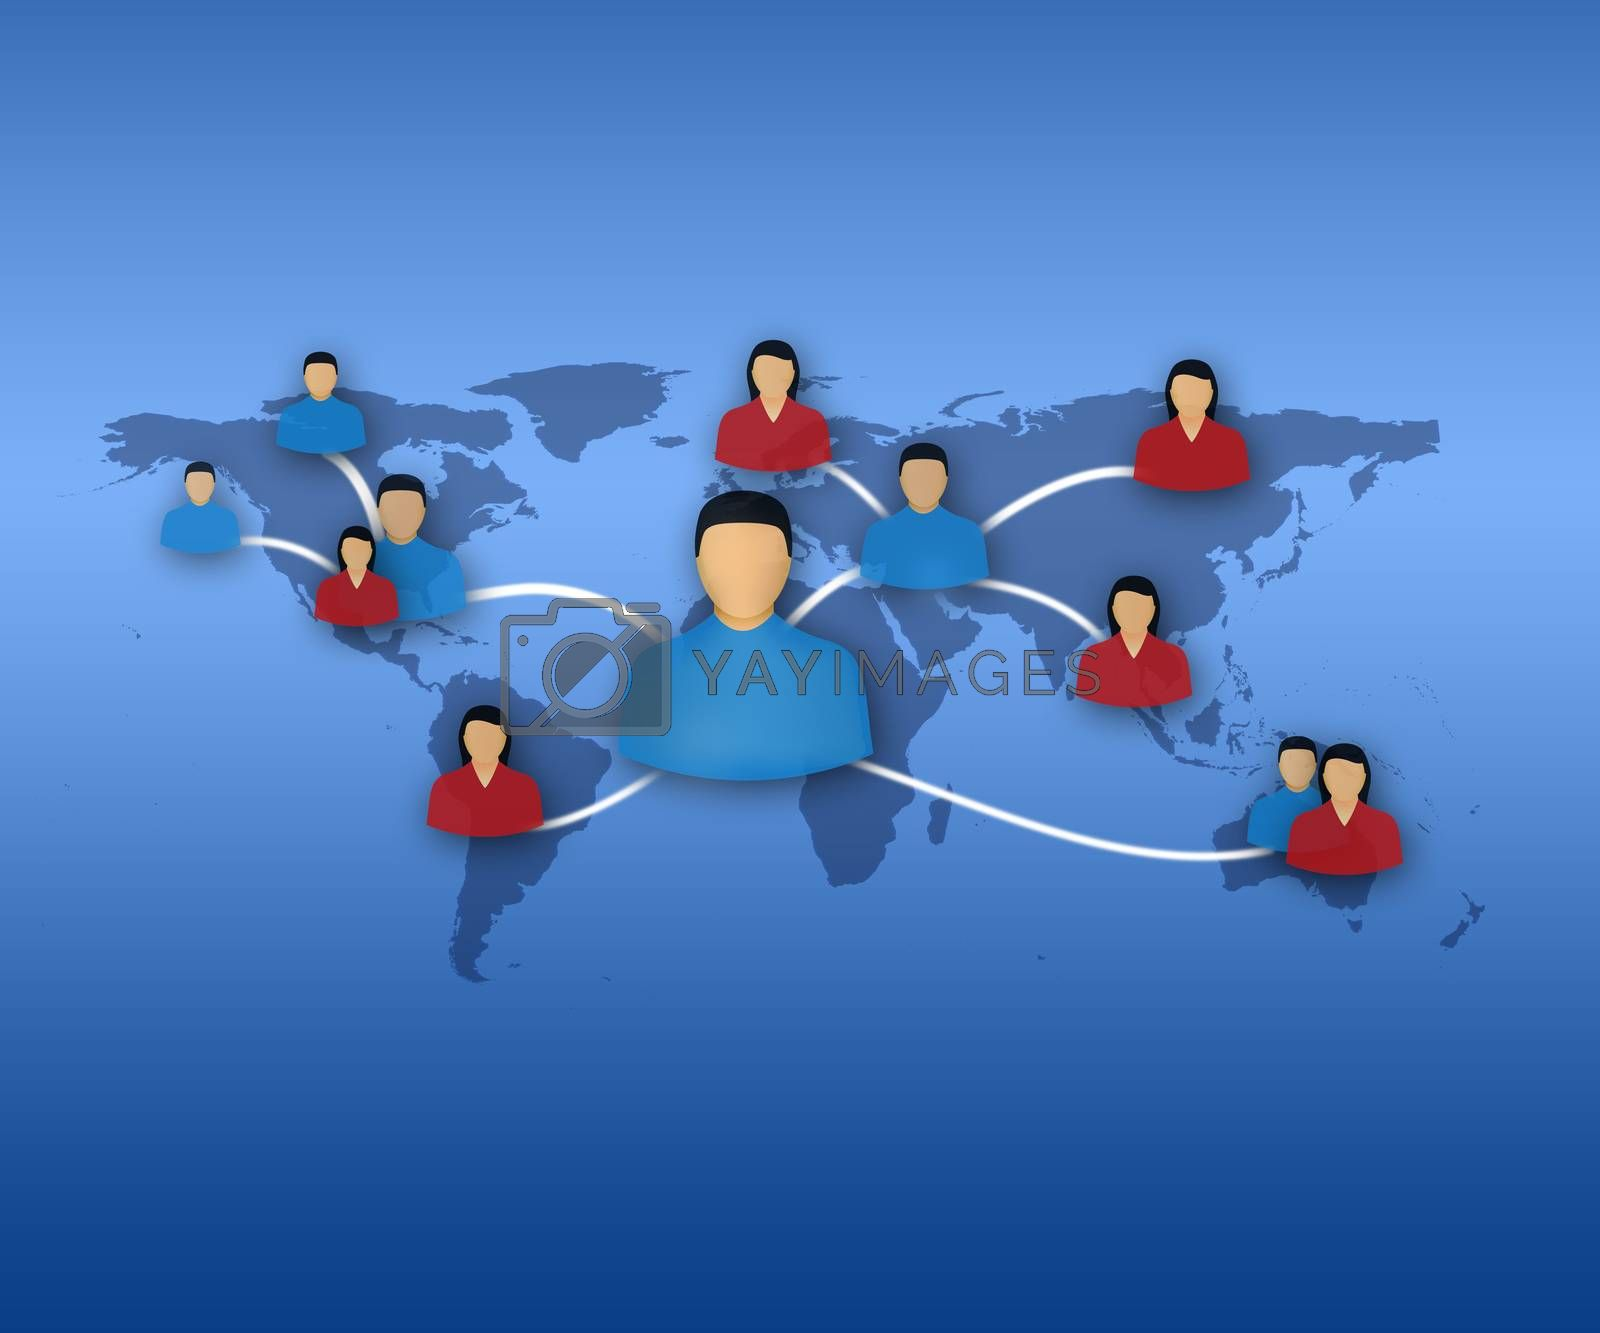 New technology of communication between people from various continents